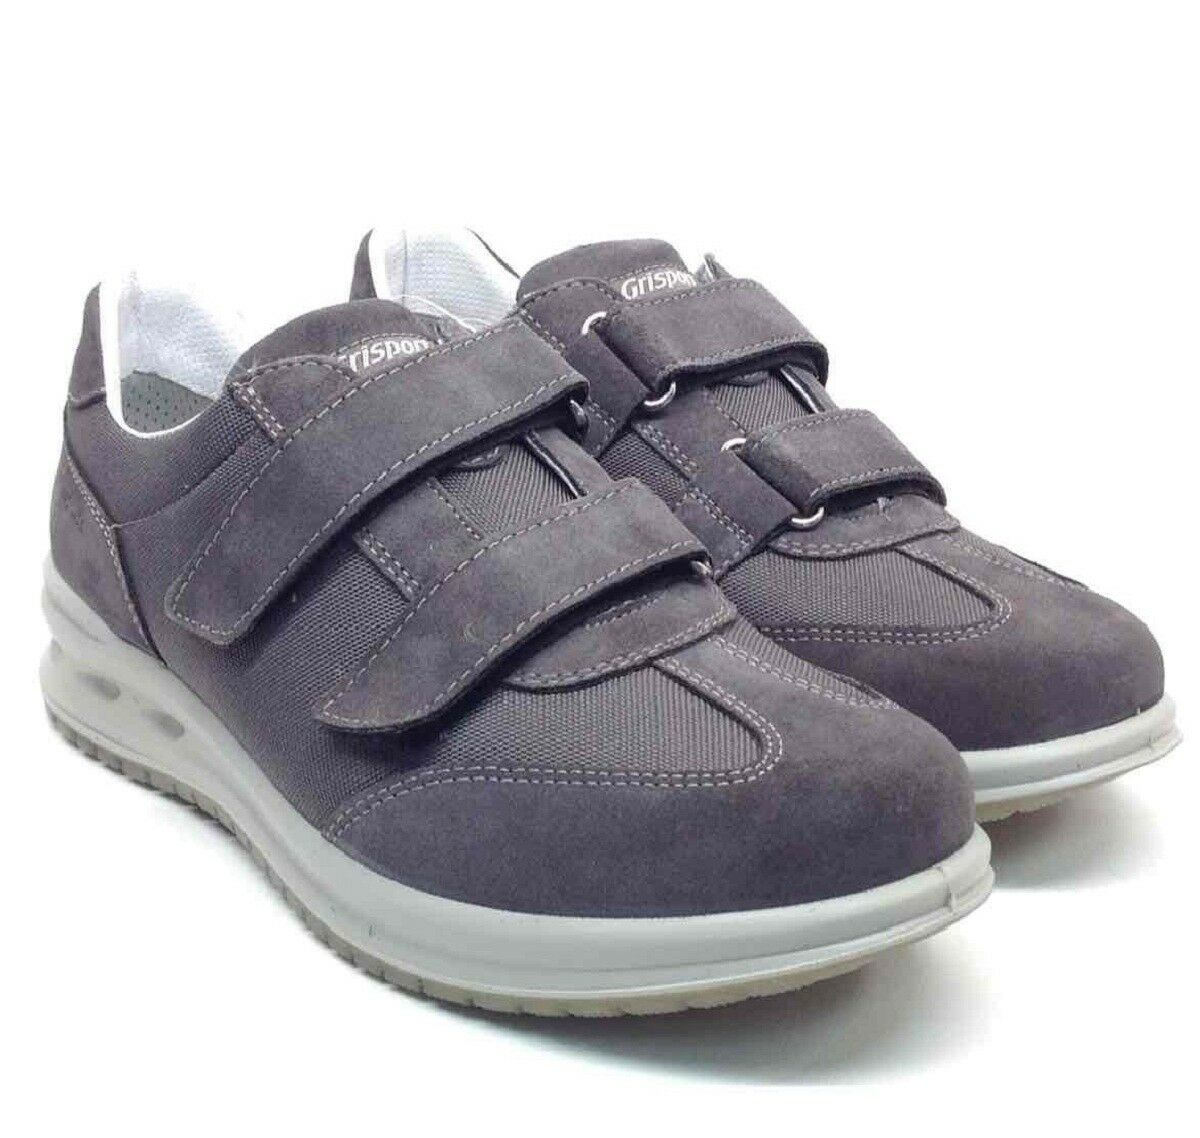 greyPORT Active shoes men a strappi grey Sneakers 43029V34 Made in